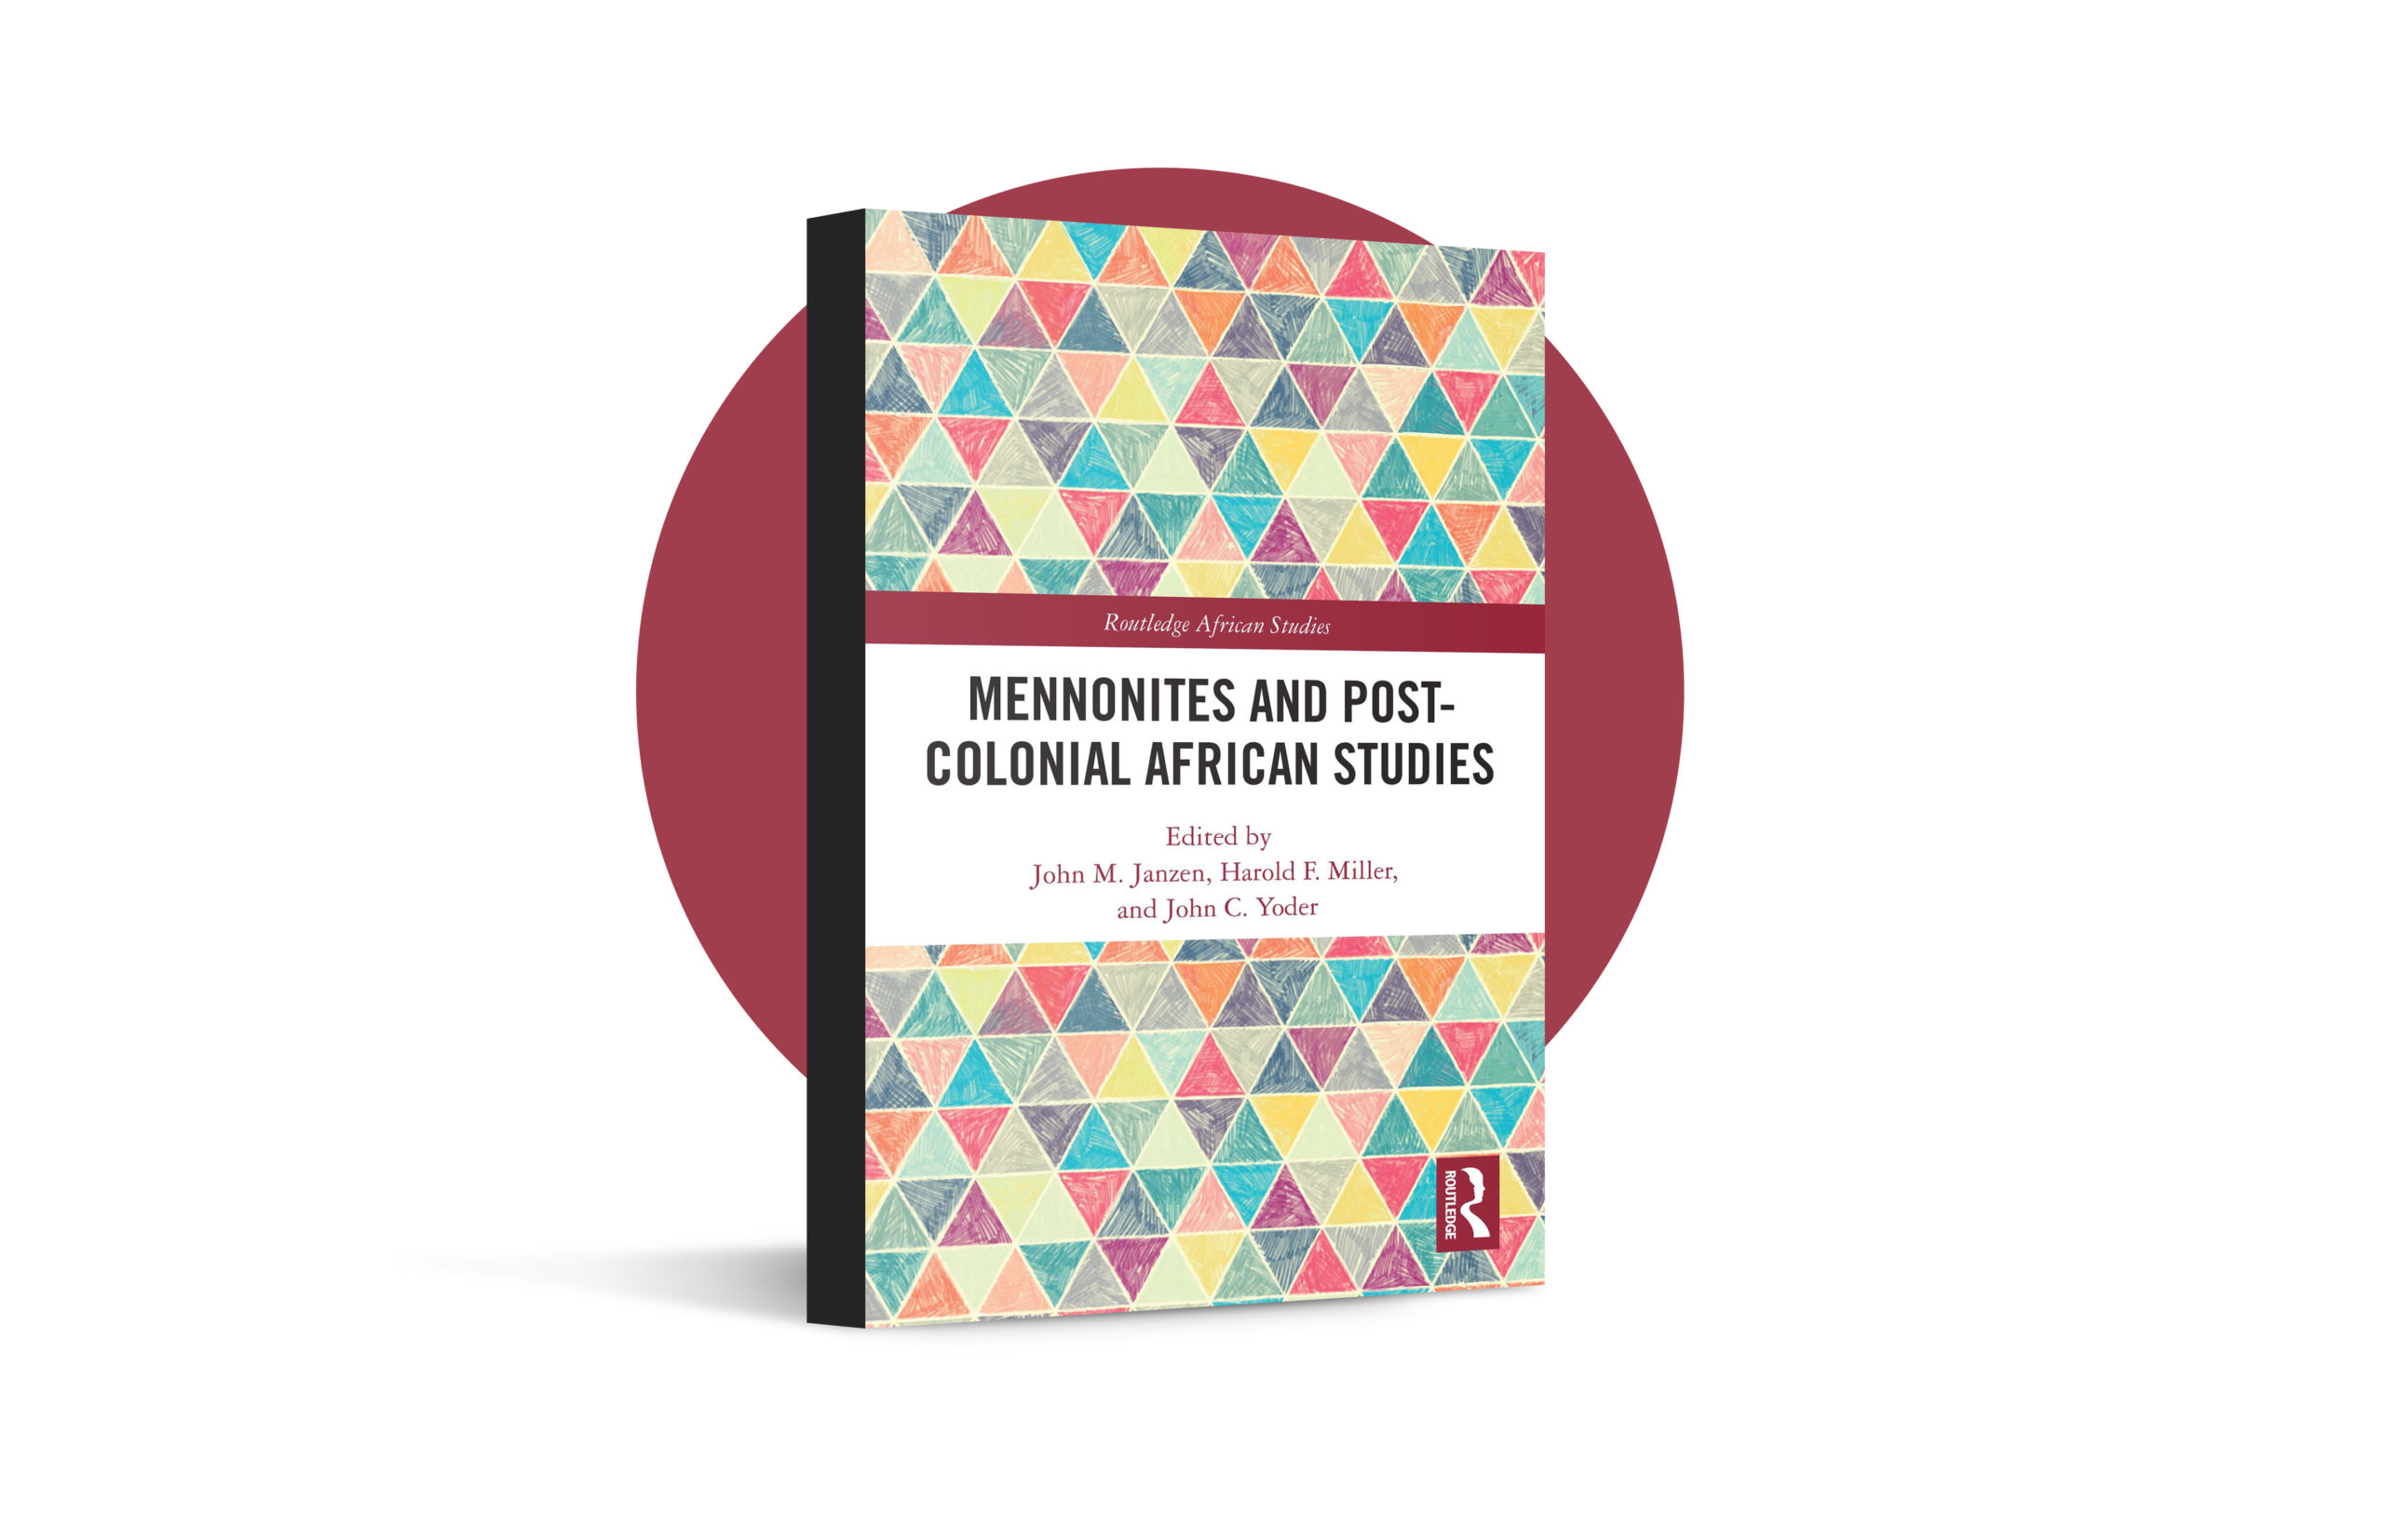 Mennonites and Post-Colonial African Studies, edited by John M. Janzen, Harold F. Miller and John C. Yoder (Routledge, 2021)